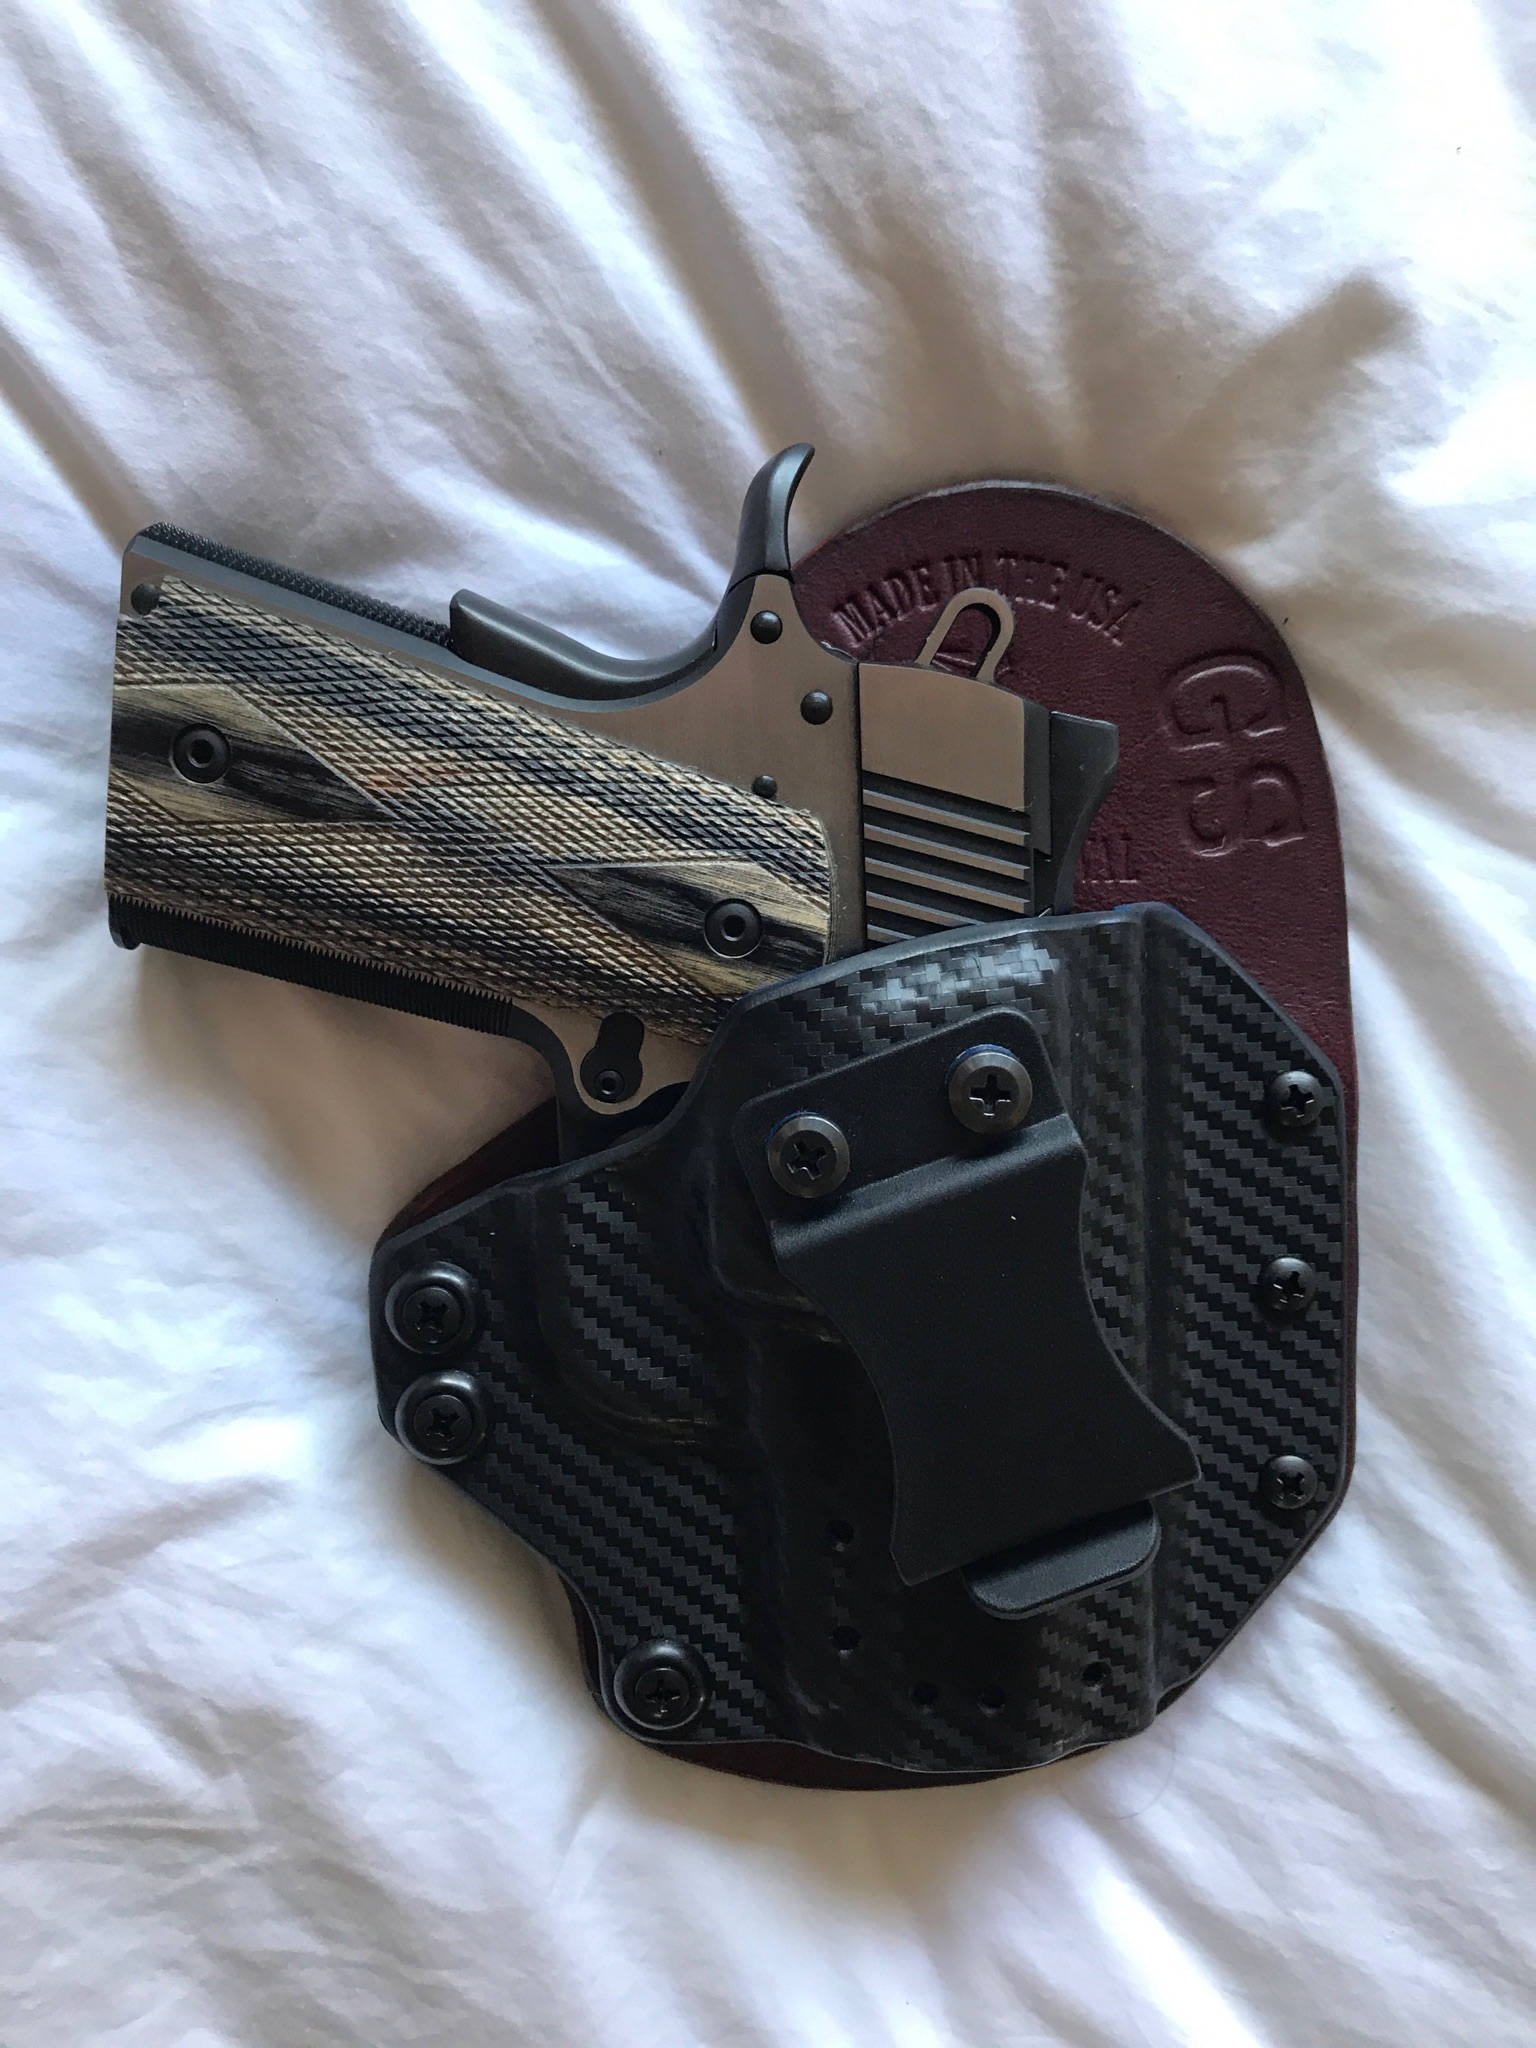 Springfield-Ethos Hybrid Holster-Defender Series A (IWB) leather